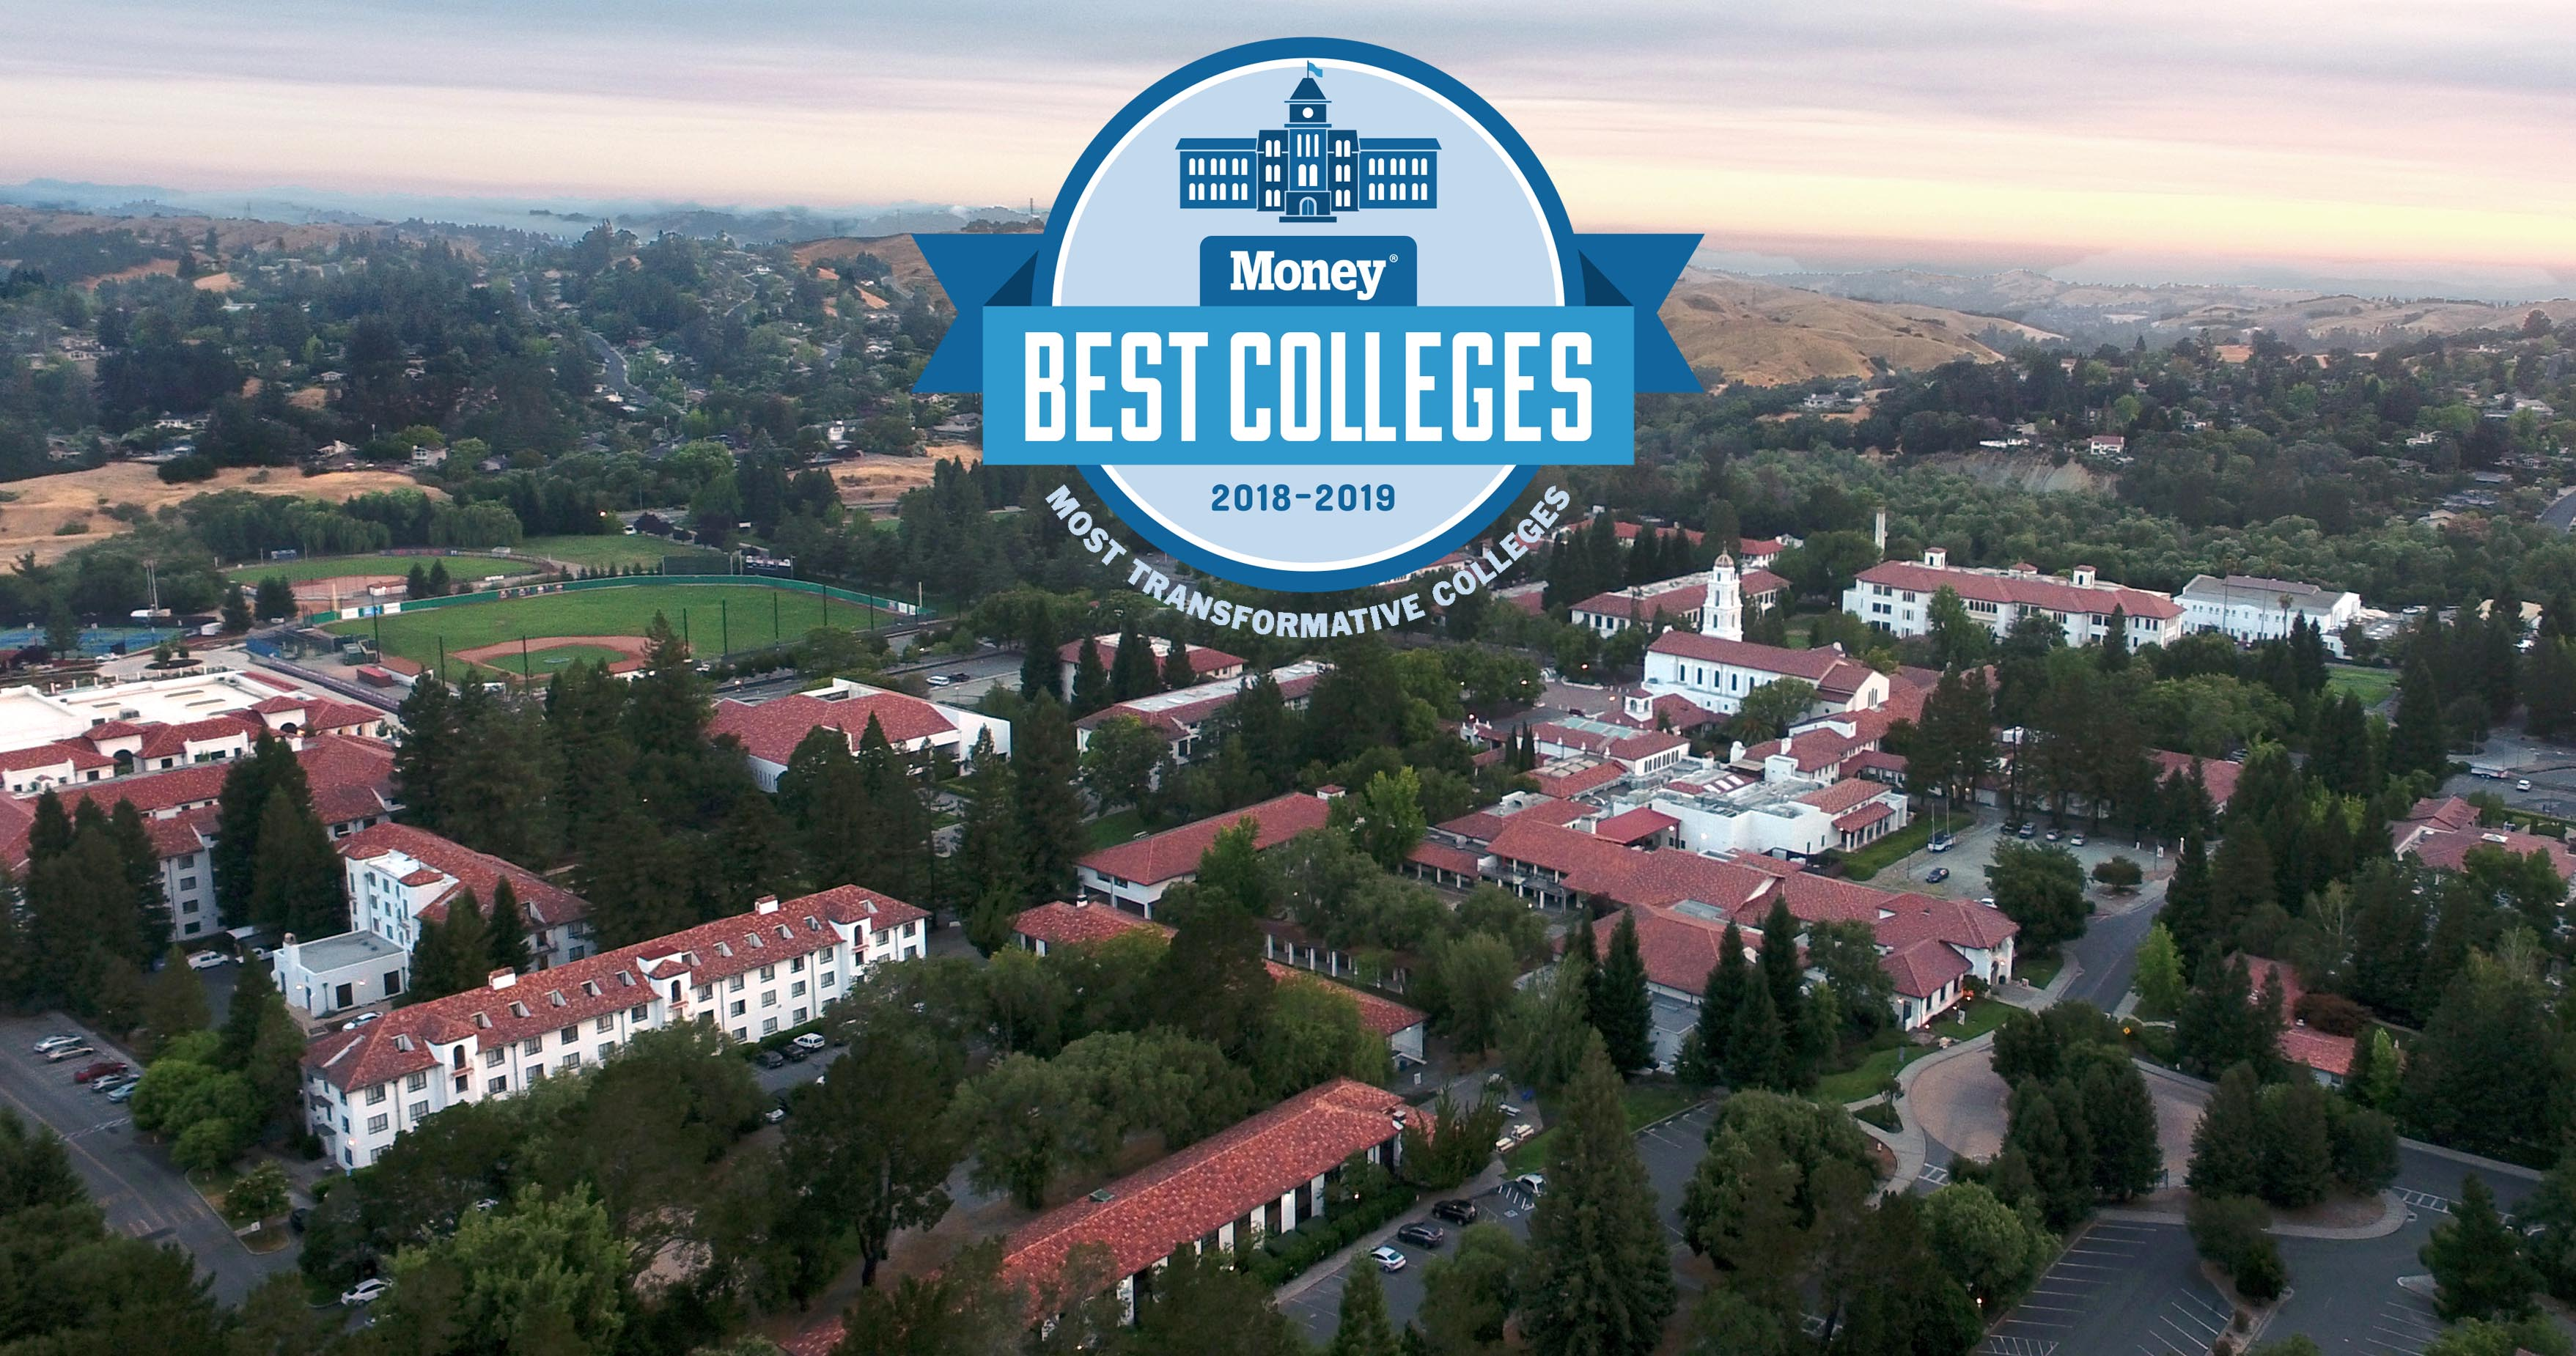 Money's Most Transformative college logo superimposed over a photo of campus